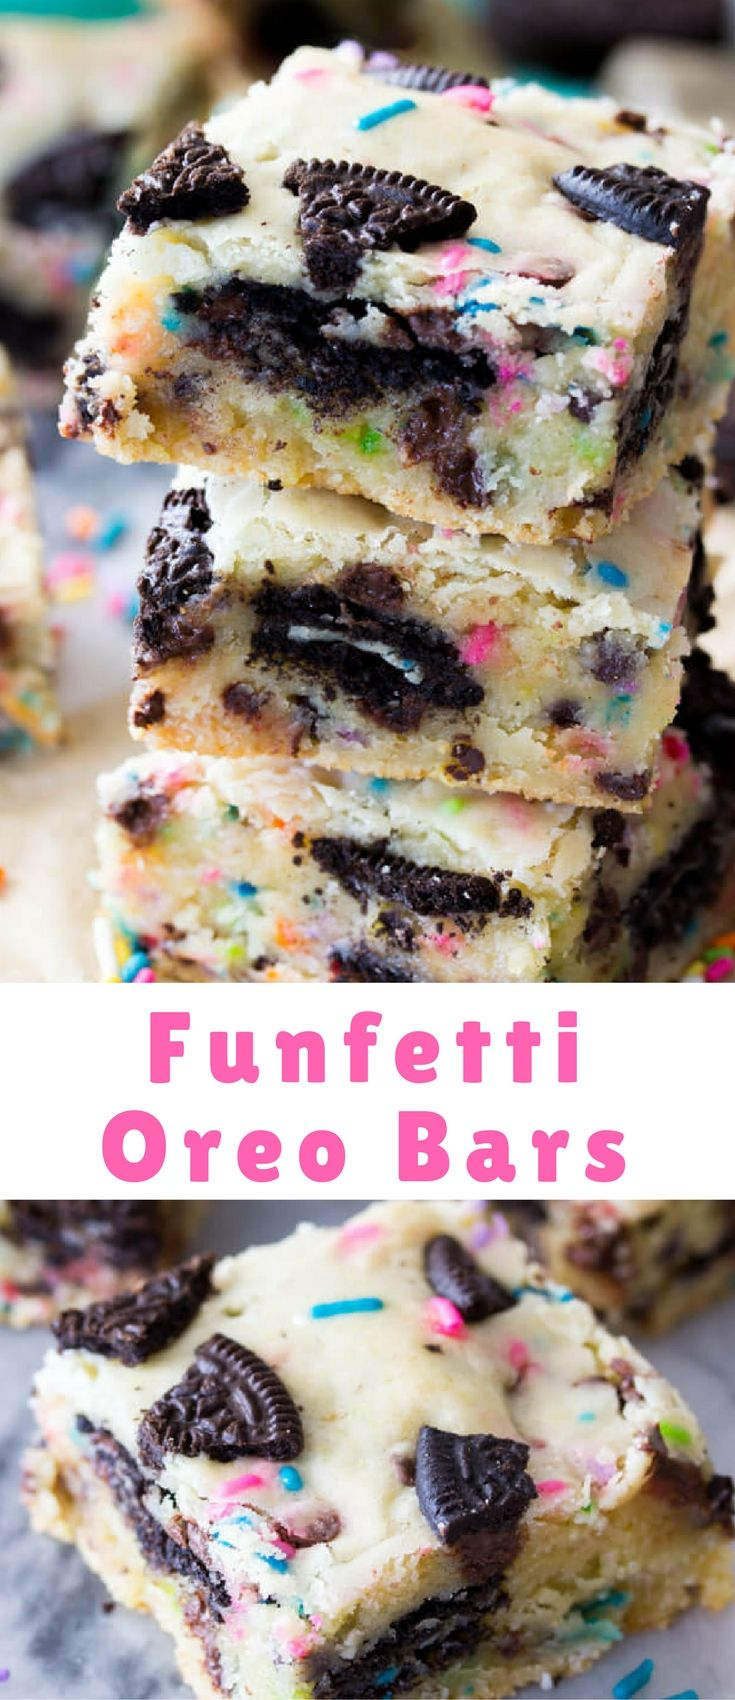 Soft, chewy, Funfetti Oreo Bars! These buttery cake batter flavored bars are jam-packed with mini chocolate chips, colorful sprinkles, and a center layer of Oreo cookies.